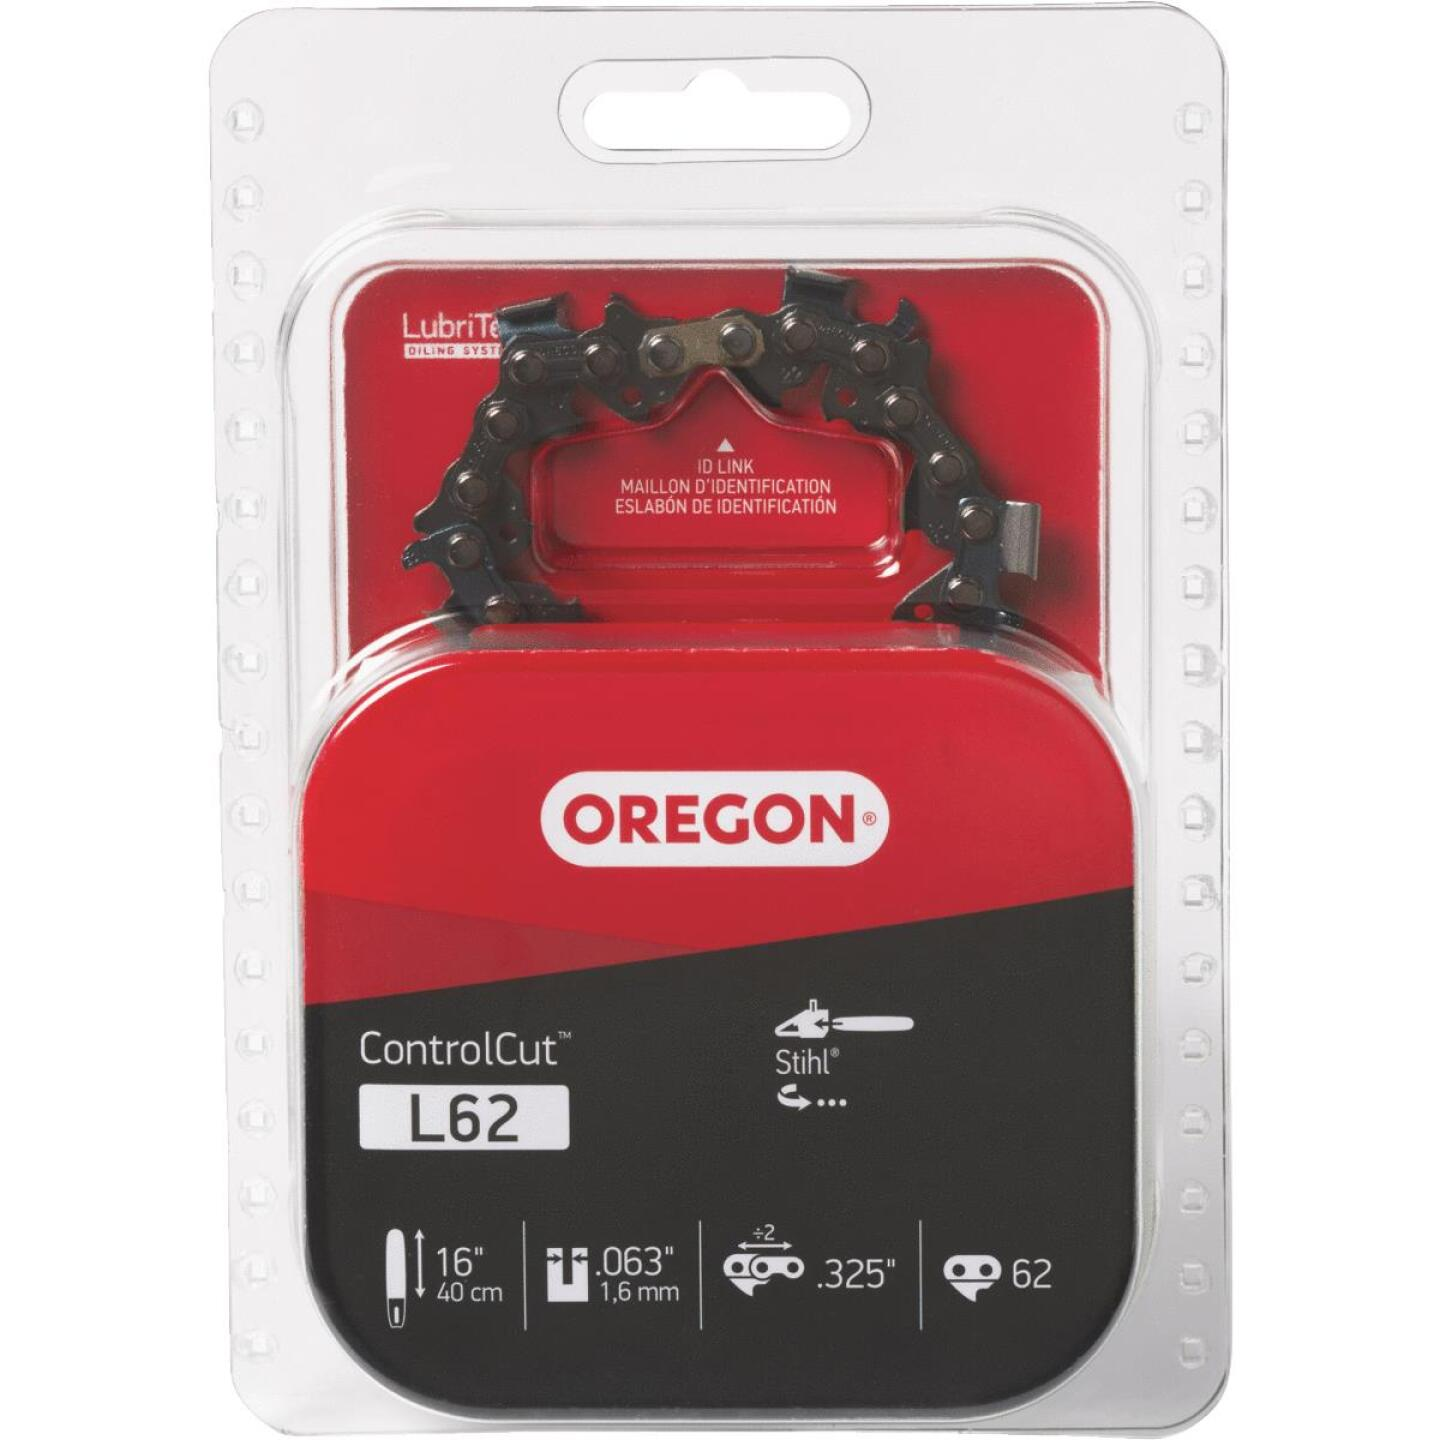 Oregon ControlCut L62 16 In. 0.325 In. 62 Link Saw Chain Image 1